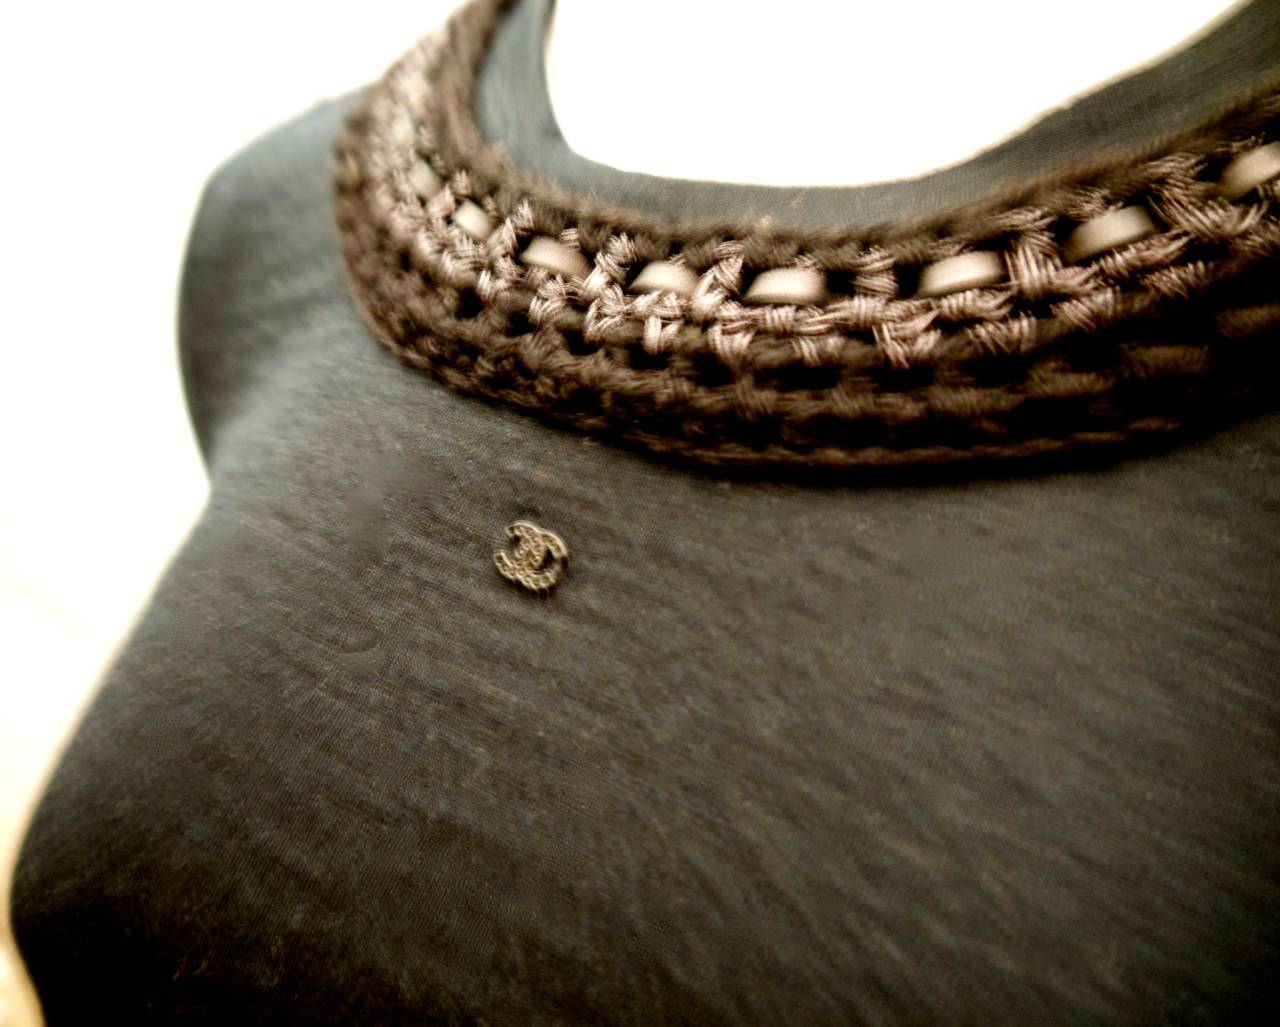 New Chanel Black Top with Intricate Woven Lambskin Collar - Size 36 In New Never_worn Condition For Sale In Boca Raton, FL